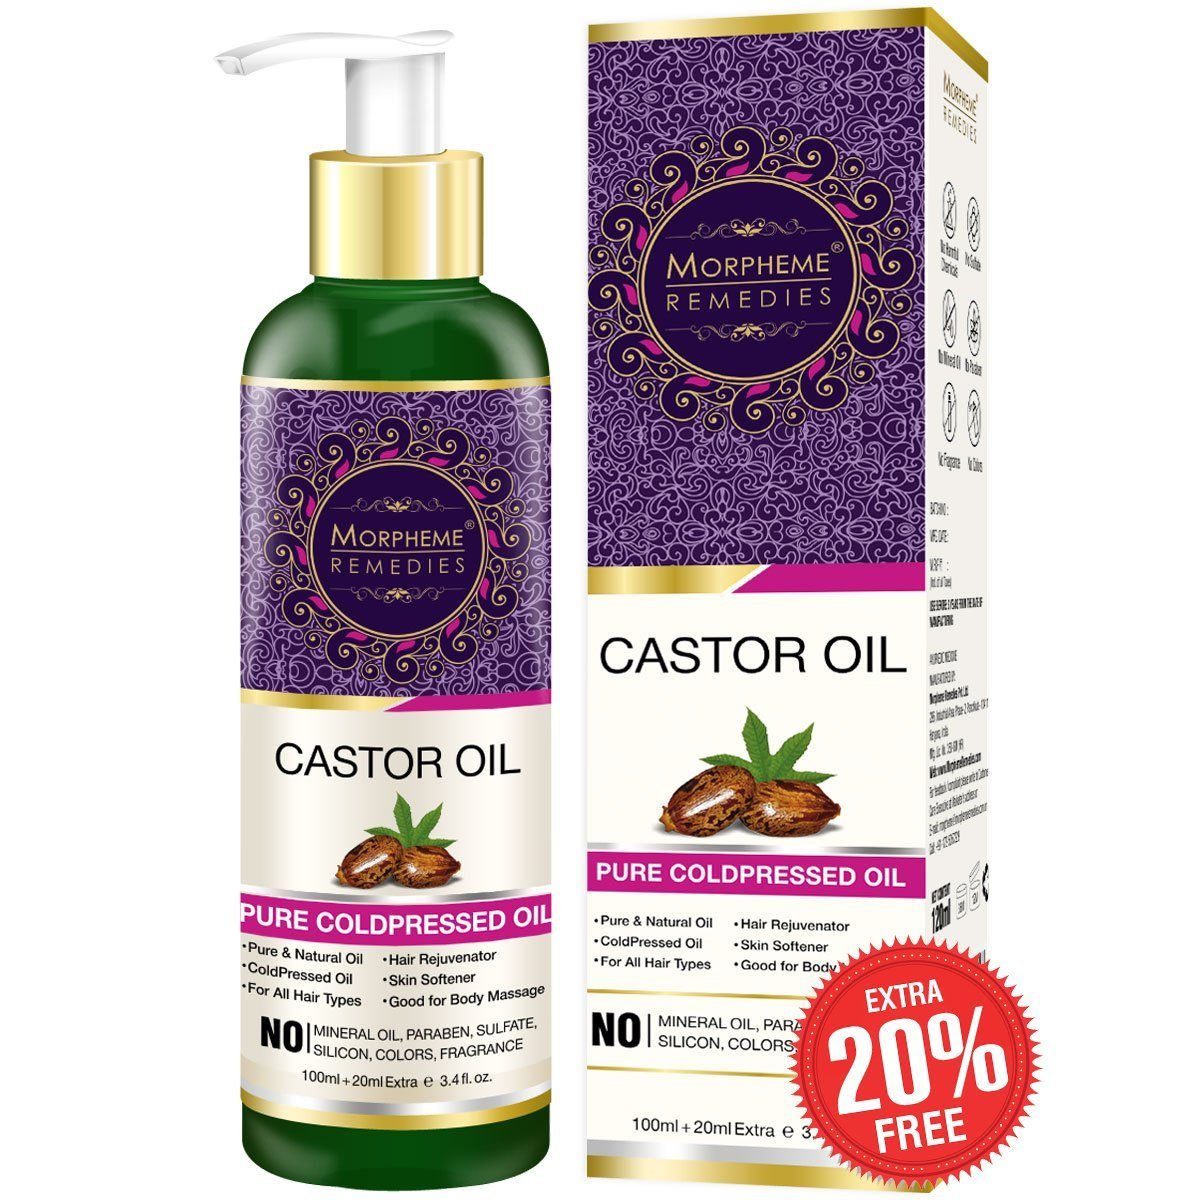 7a27447f9 Morpheme Remedies Pure Coldpressed Castor Oil at Nykaa.com